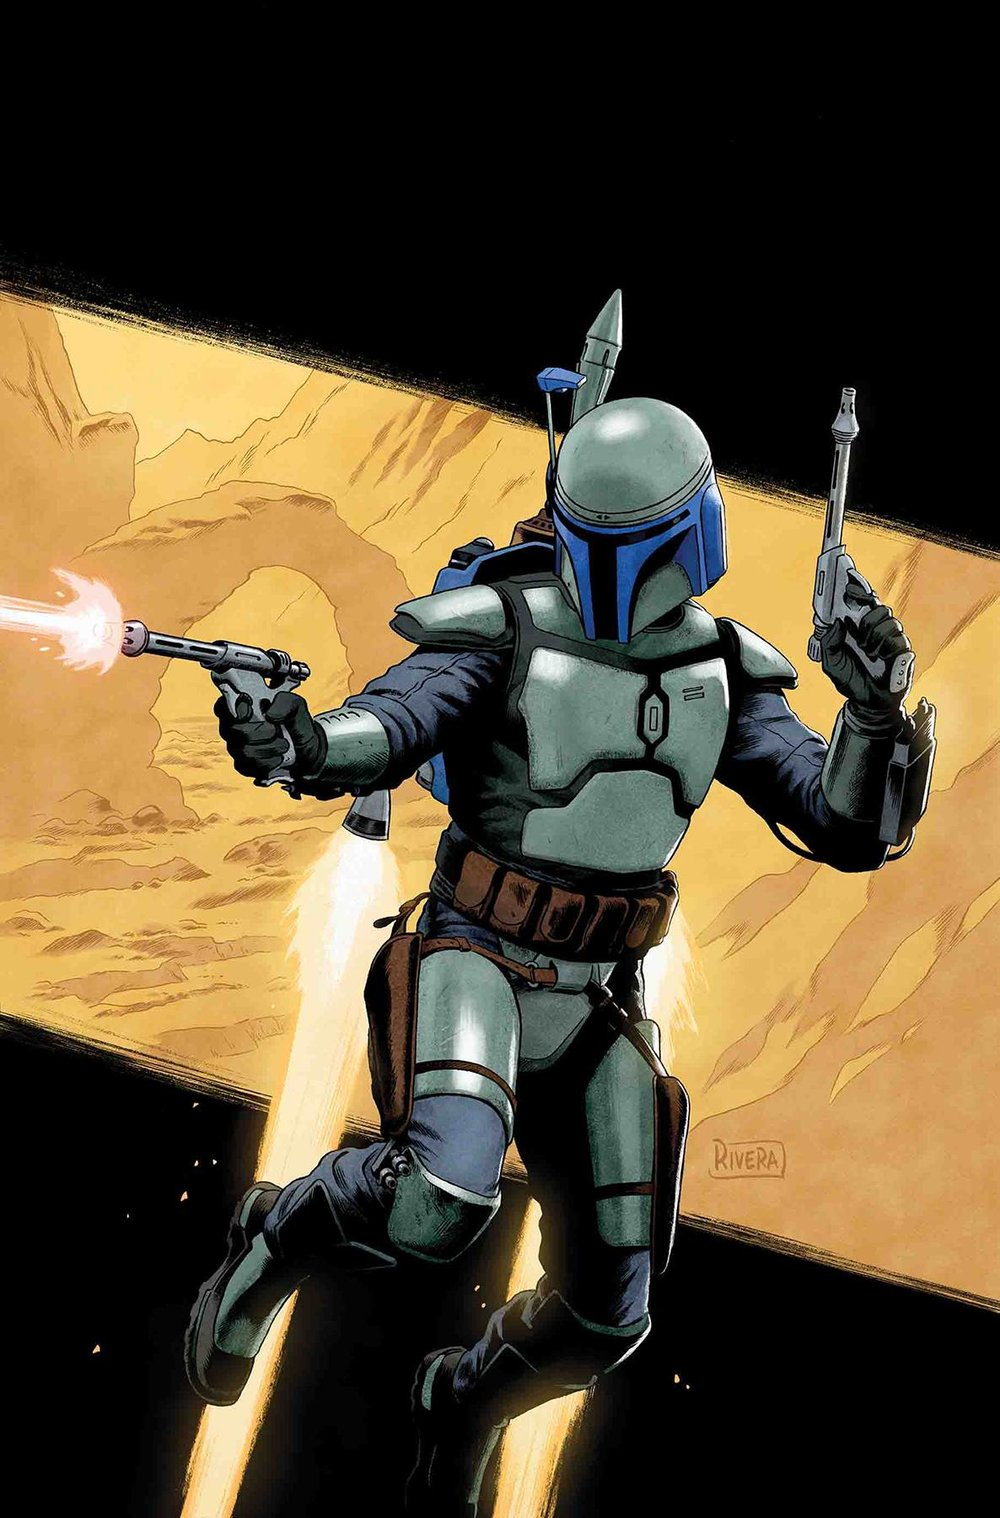 STAR WARS AOR JANGO FETT 1 of 1.jpg